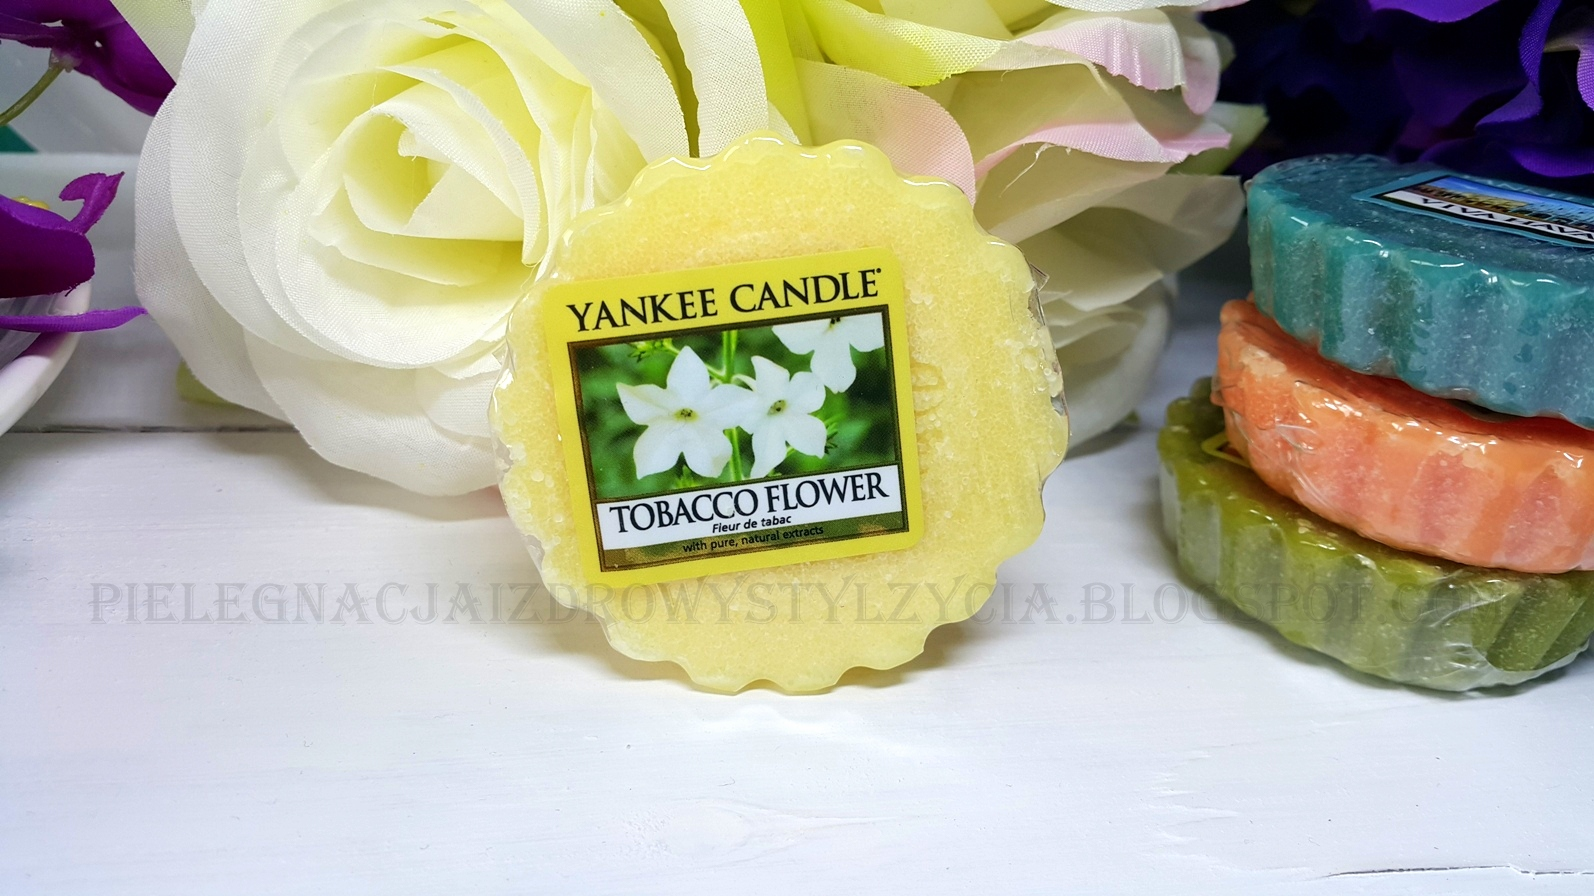 Tobacco Flower Yankee Candle